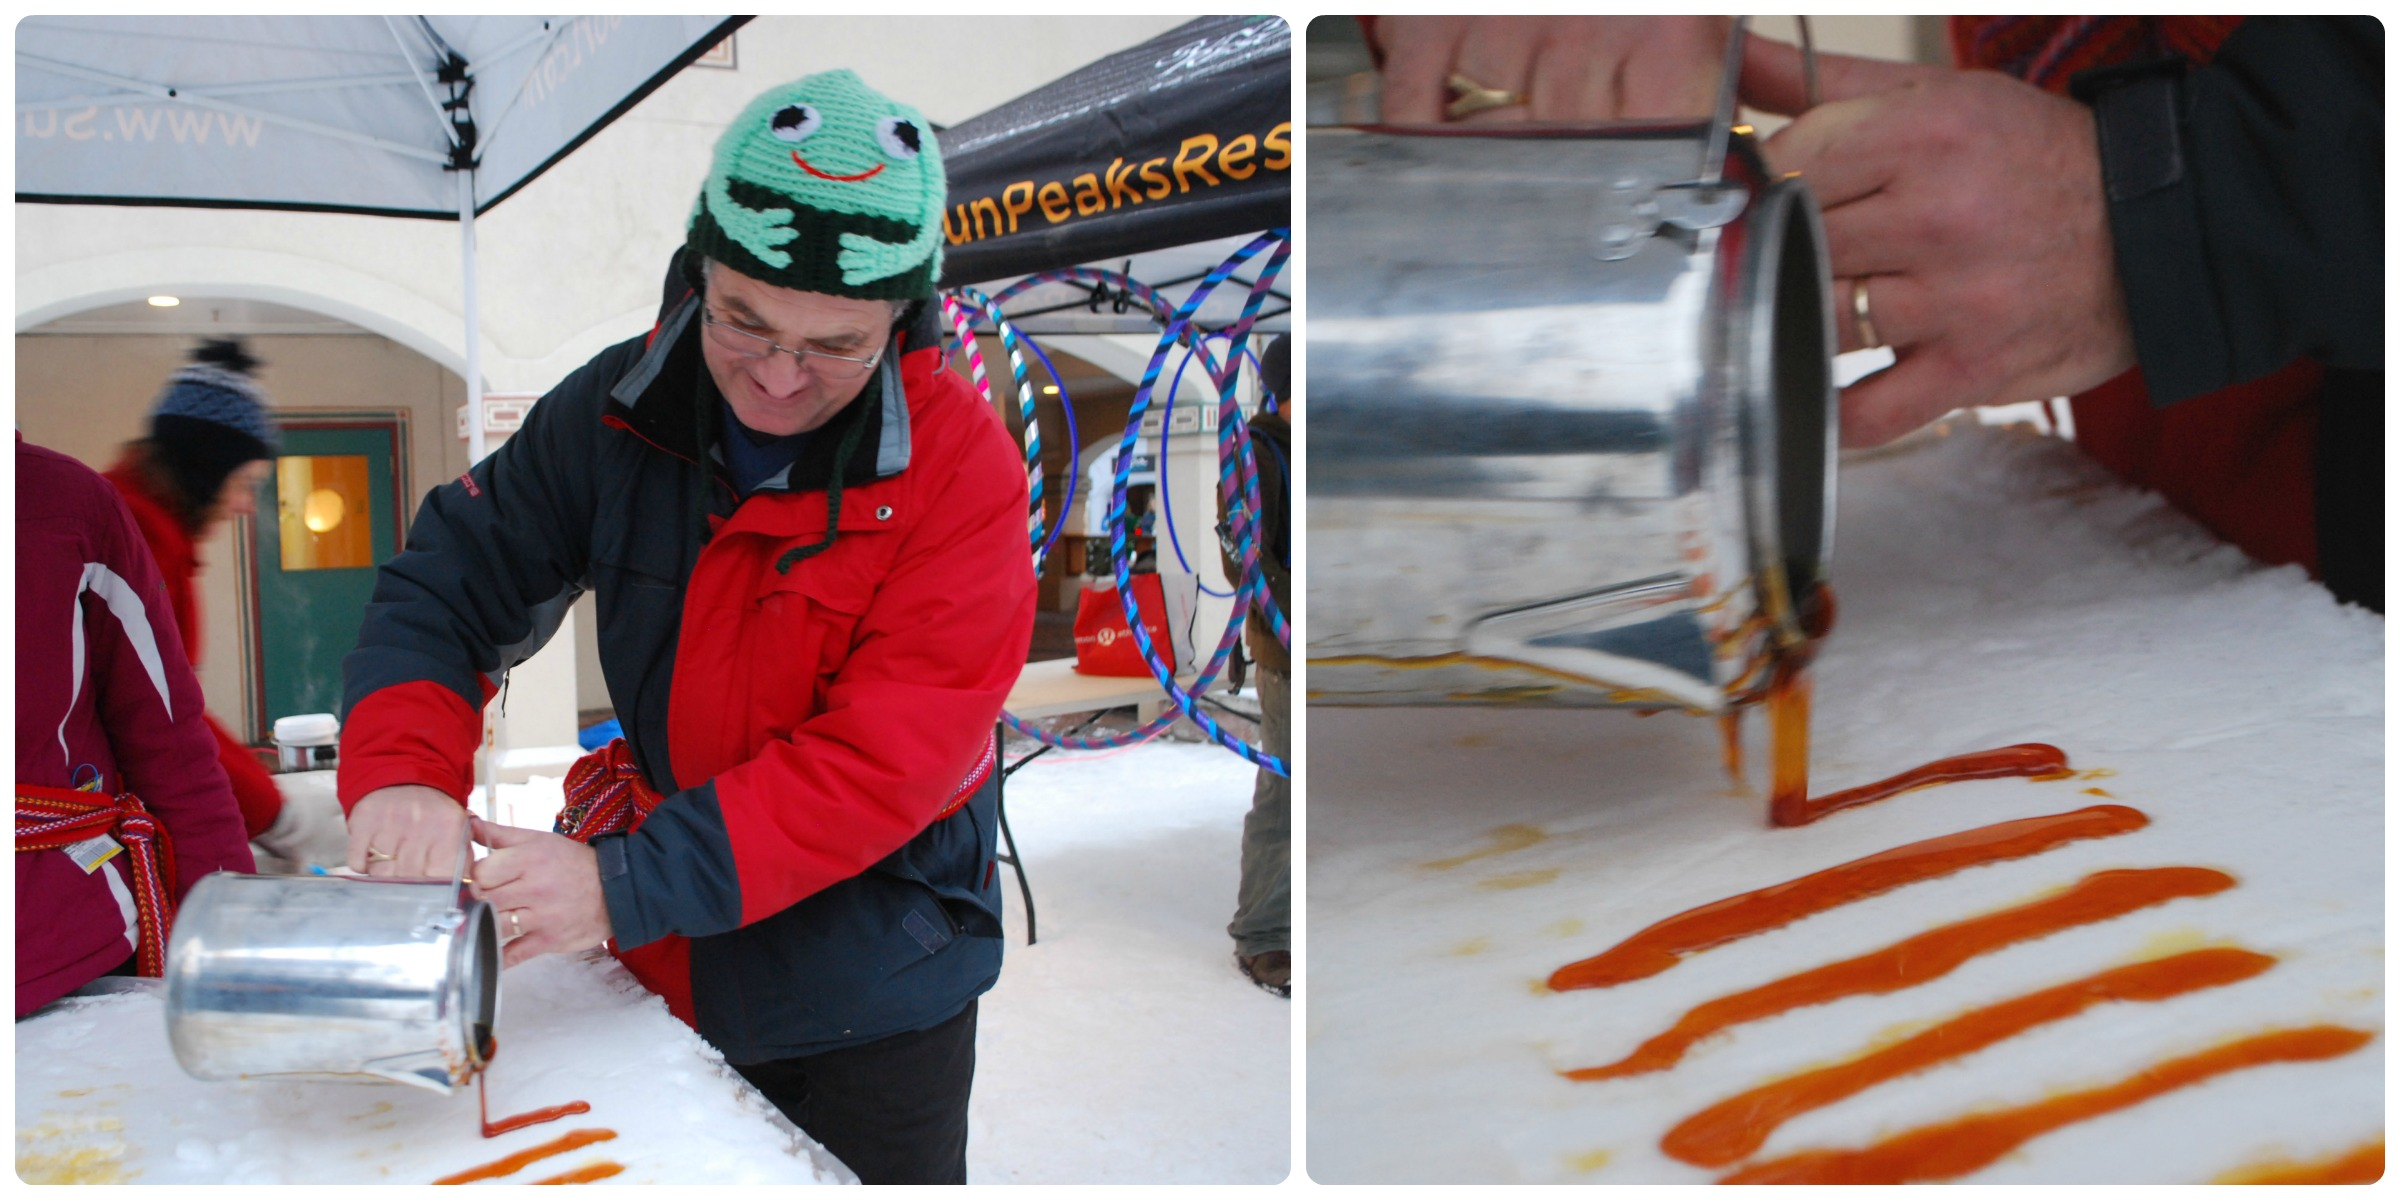 Eric Villeneuve from l'Association francophone de Kamloops pours maple syrup on snow for a delicious traditional winter treat.